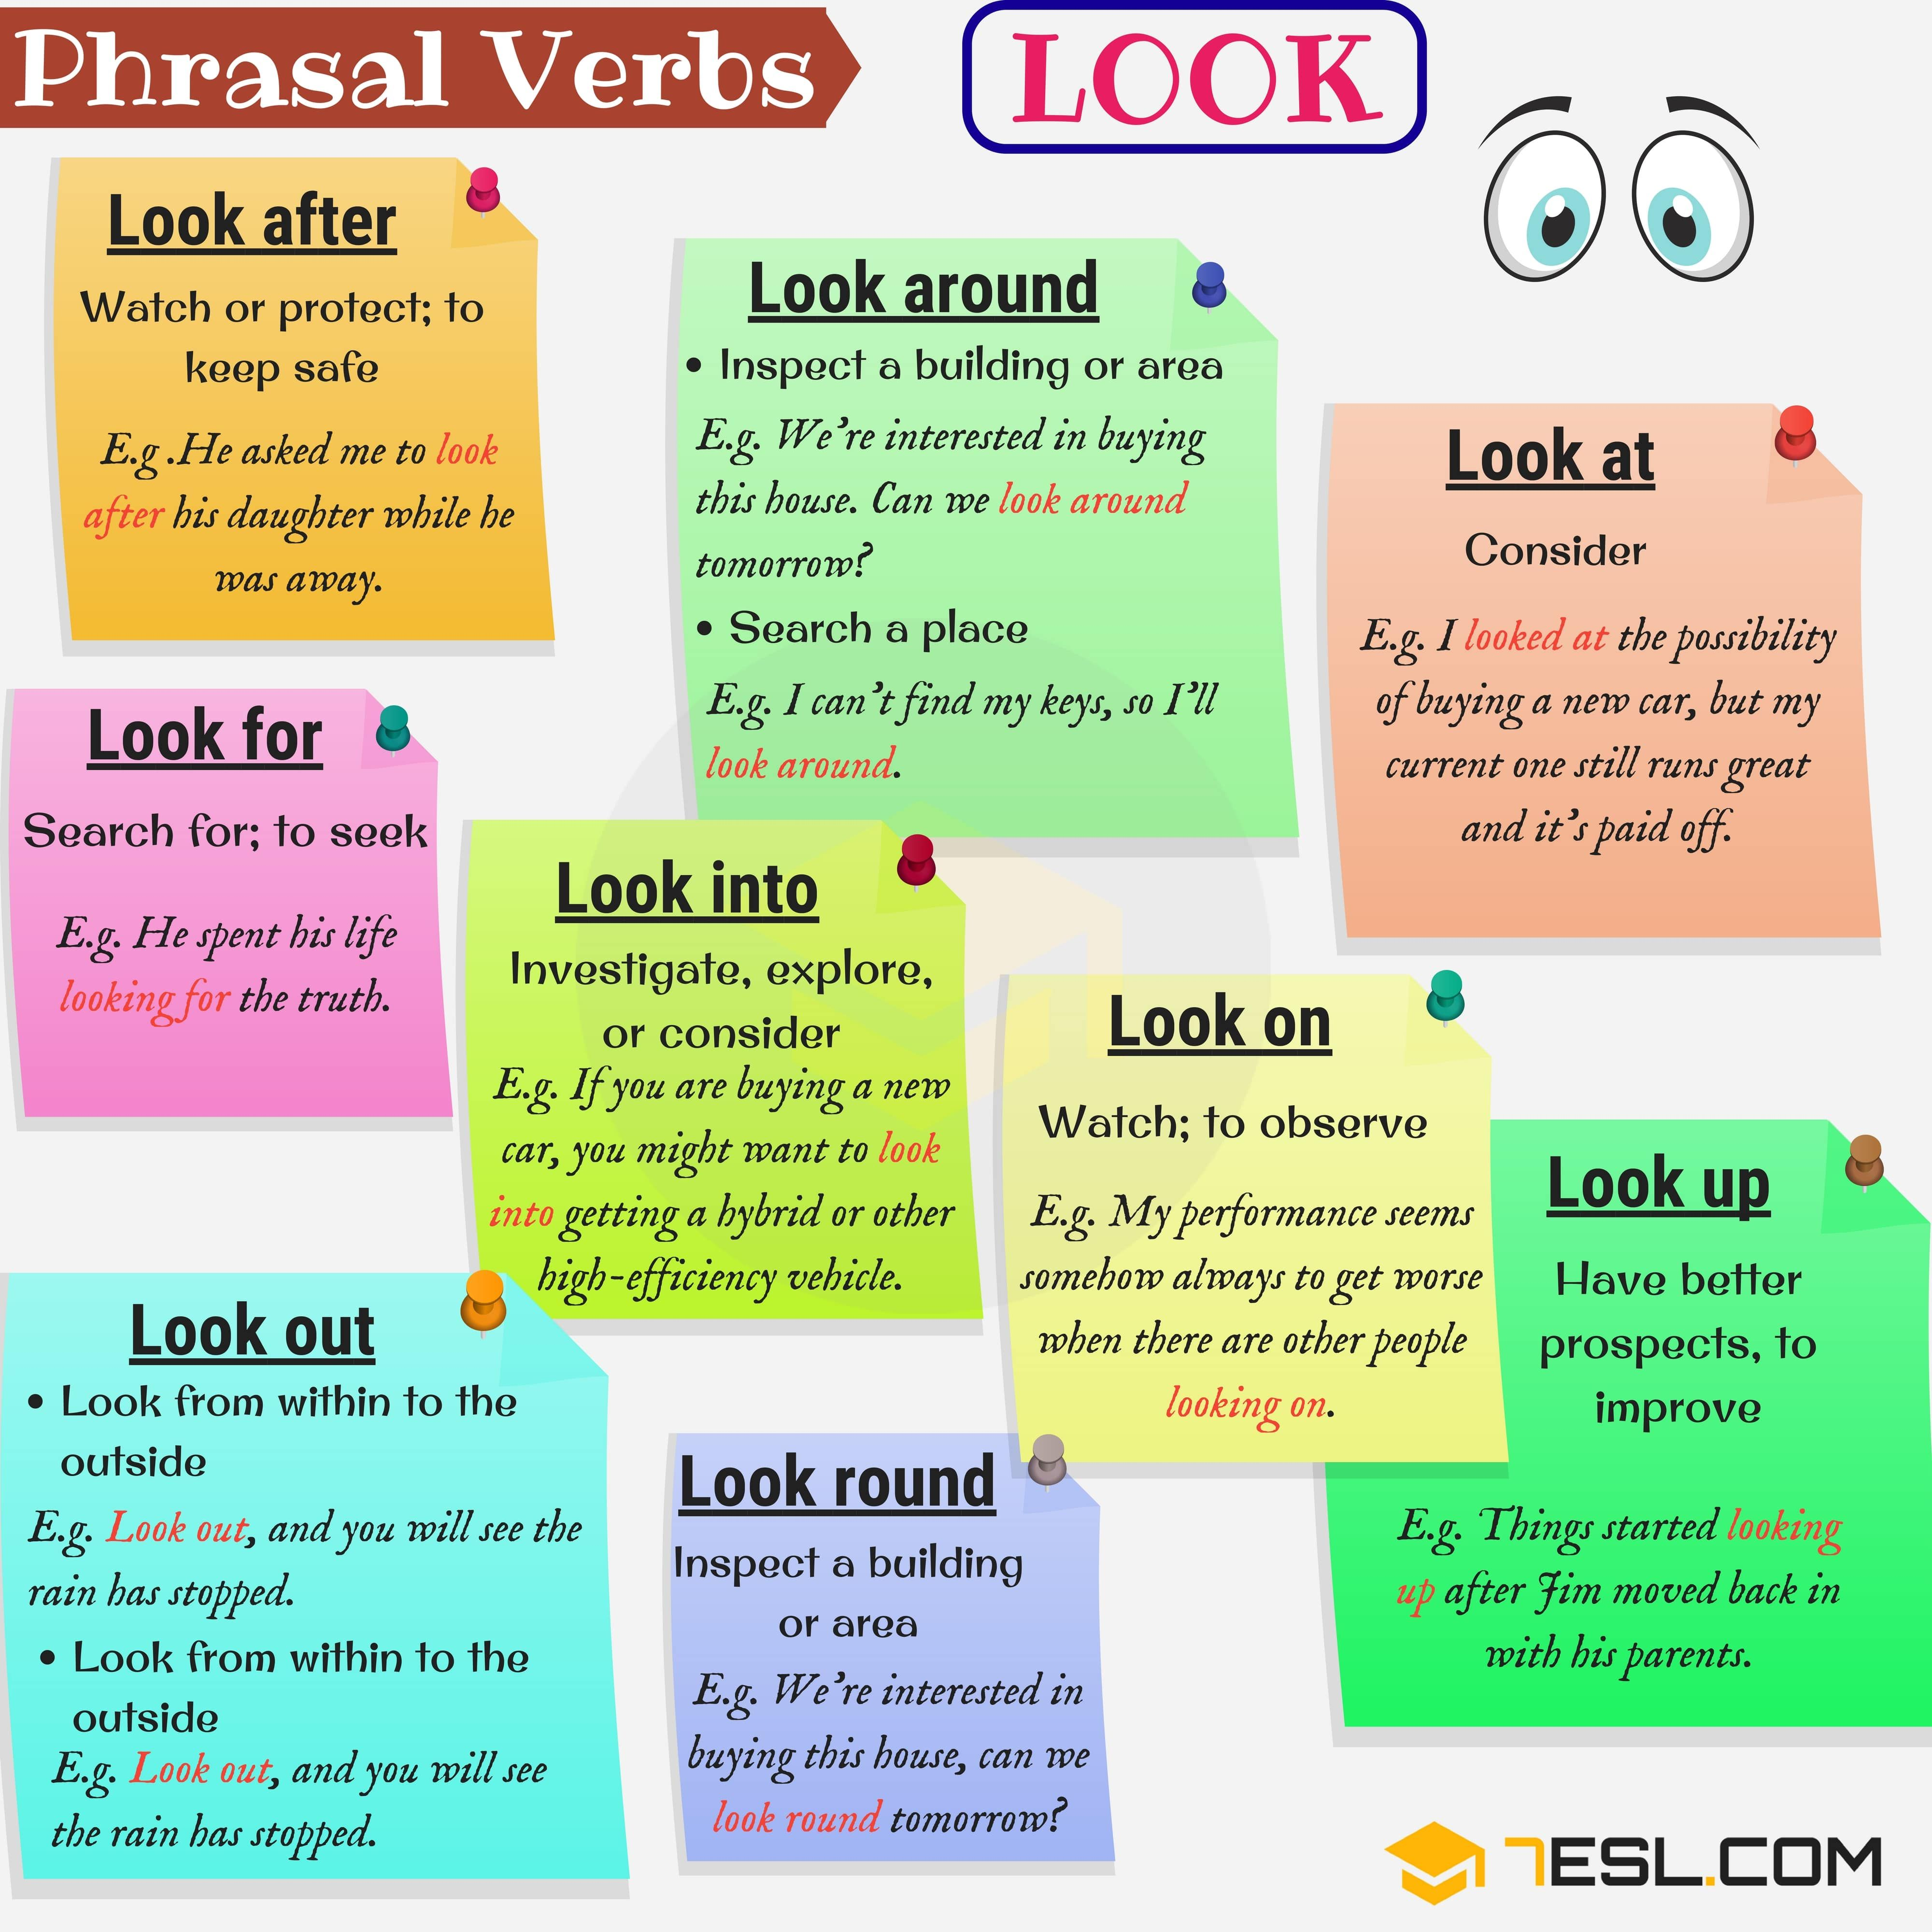 30 Common Phrasal Verbs With Look With Meaning And